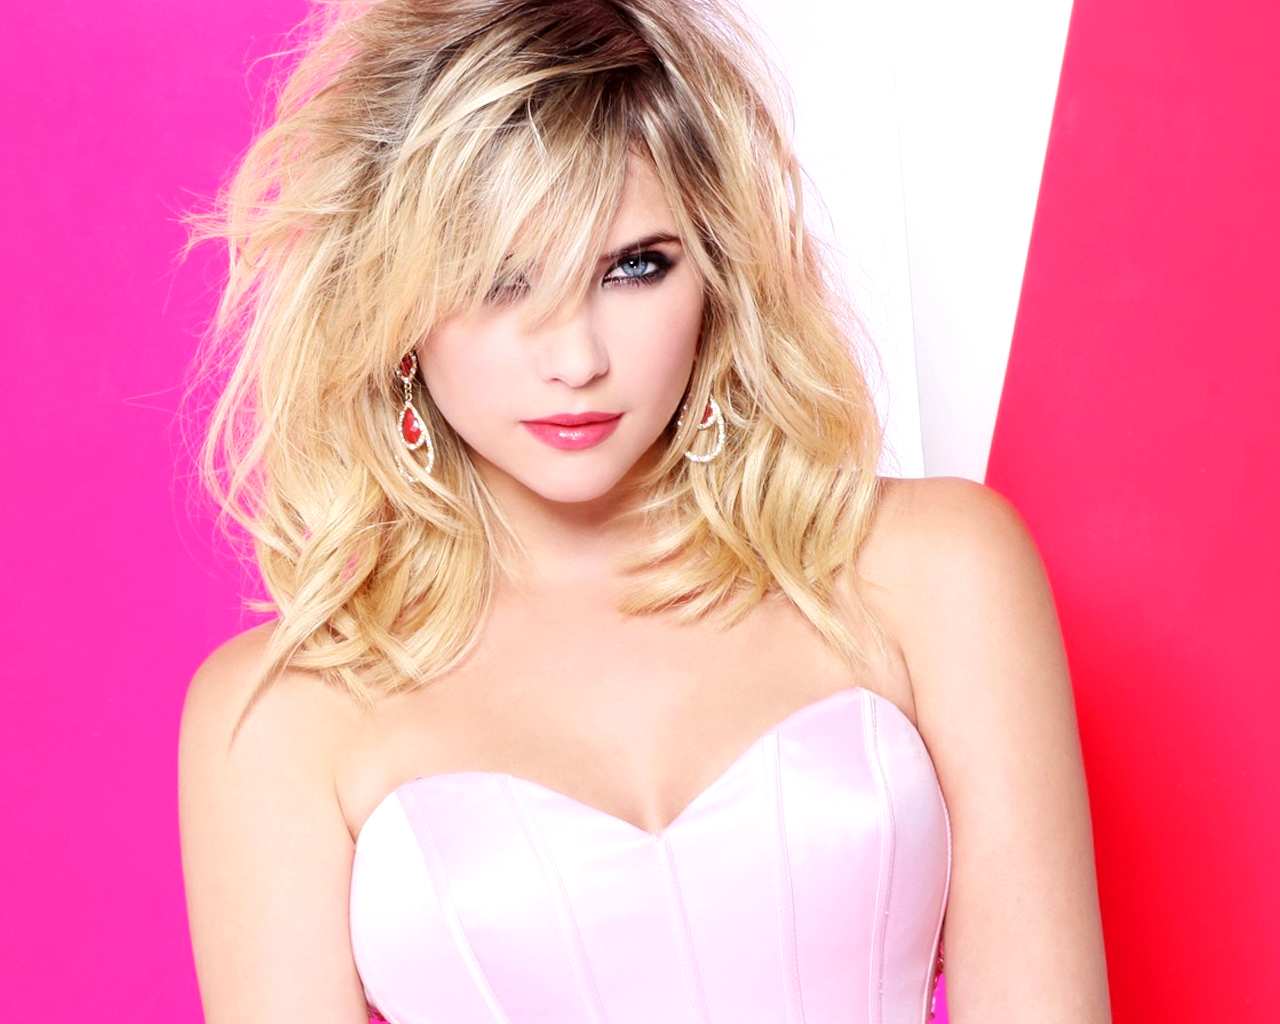 ashley benson wikiashley benson gif, ashley benson and tyler blackburn, ashley benson 2017, ashley benson 2016, ashley benson photoshoot, ashley benson gif hunt, ashley benson png, ashley benson gallery, ashley benson style, ashley benson films, ashley benson wiki, ashley benson wikipedia, ashley benson 2015, ashley benson short hair, ashley benson james franco, ashley benson twitter, ashley benson instagram, ashley benson imdb, ashley benson how i met your mother, ashley benson manip